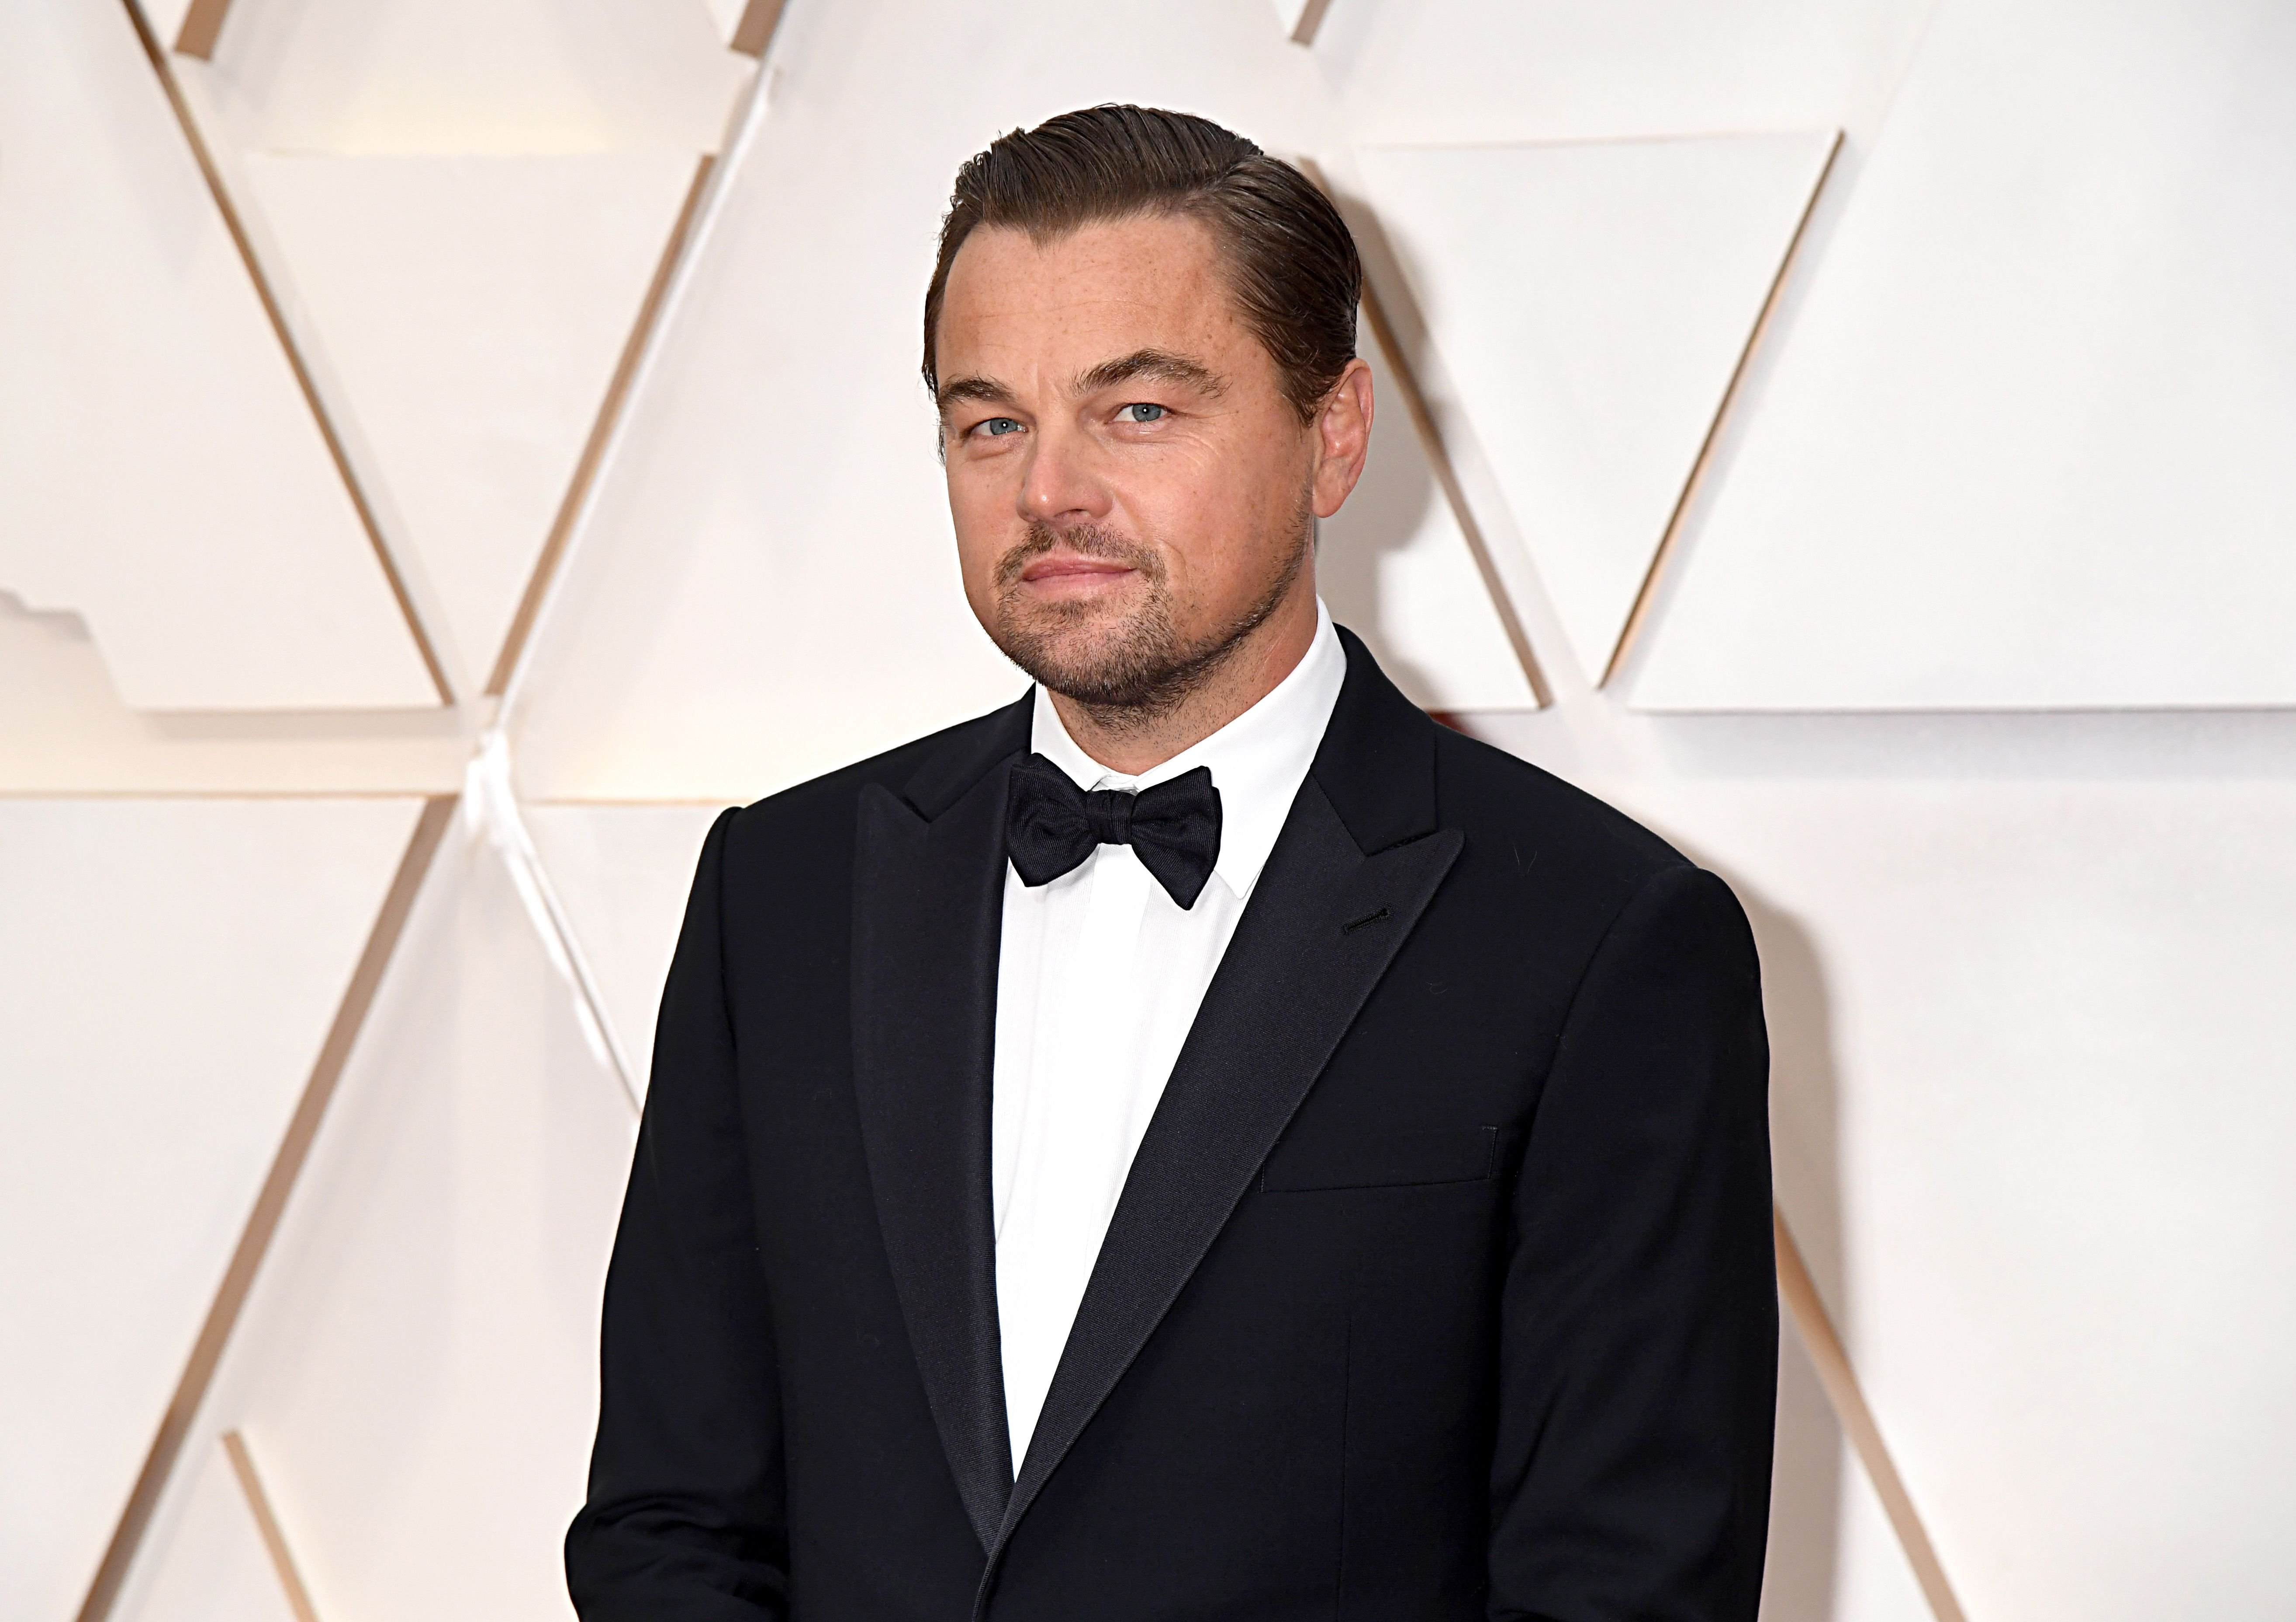 Leonardo DiCaprio attending the Oscars 2020/Photo:Getty Images